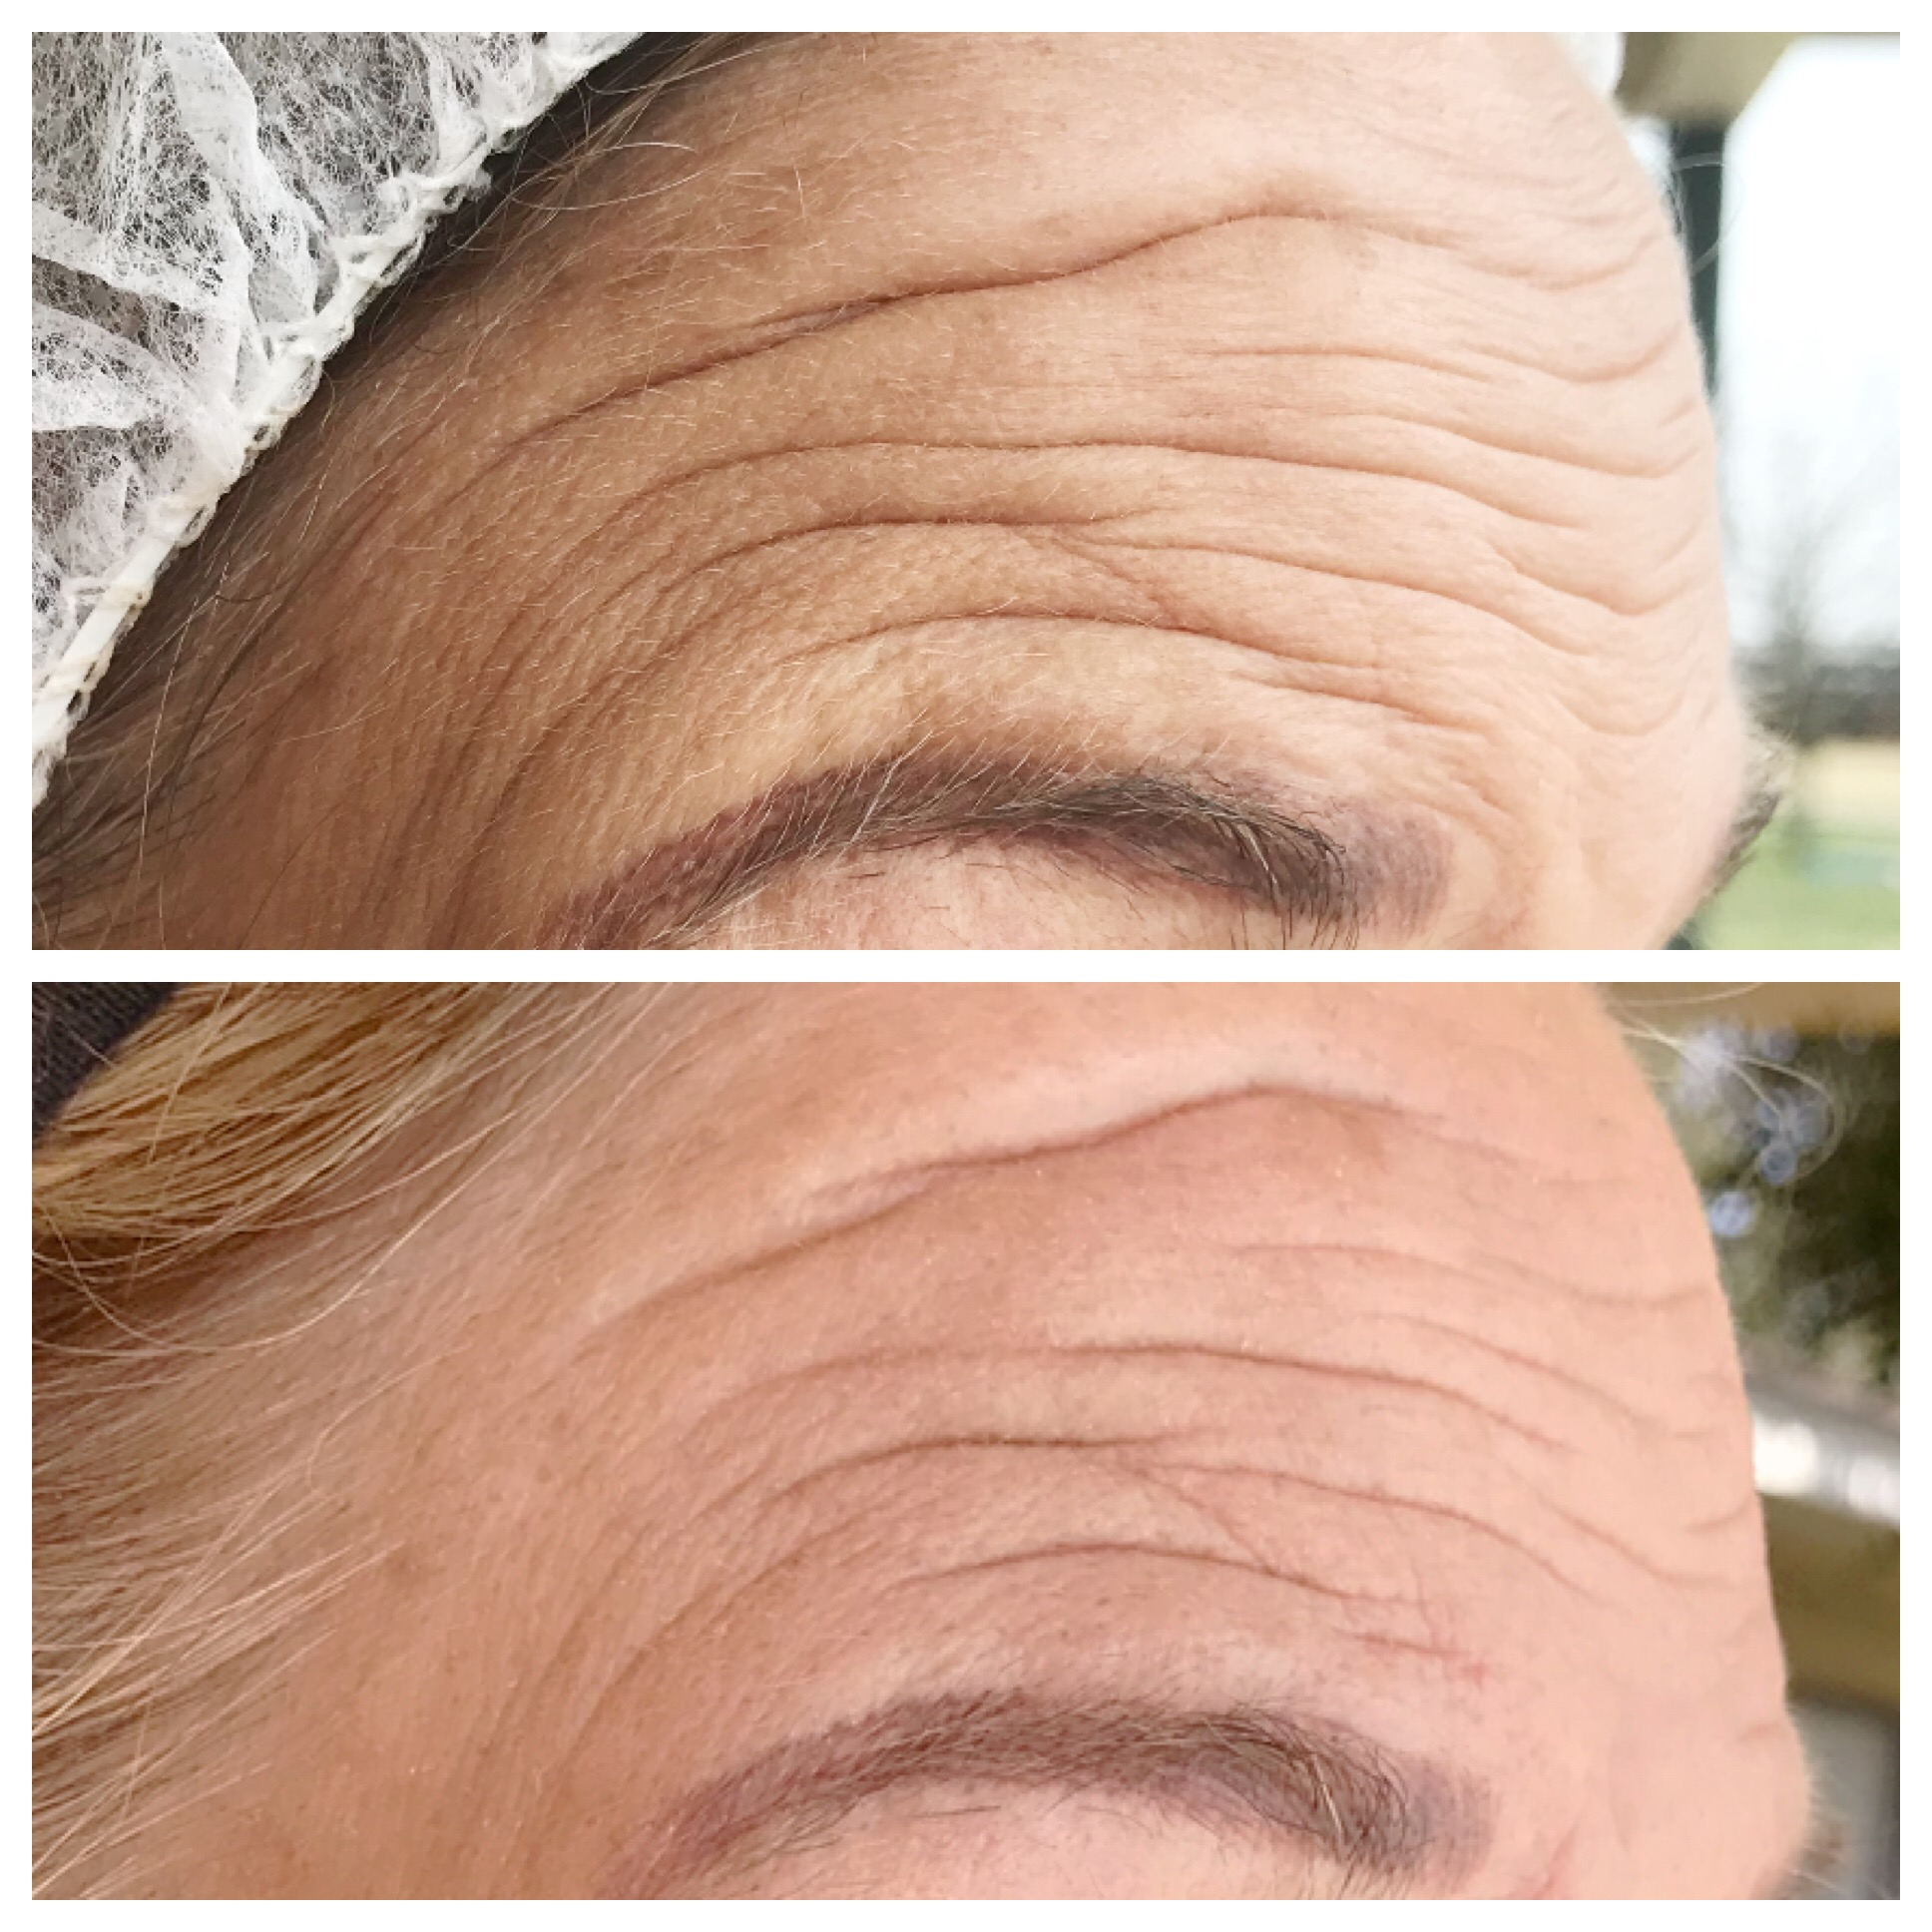 One treatment, 2.5 weeks healed. Deep wrinkles are have shortened and are more shallow. Some fine lines and smaller wrinkles have disappeared. Client has brow raised (flexed) in both images.